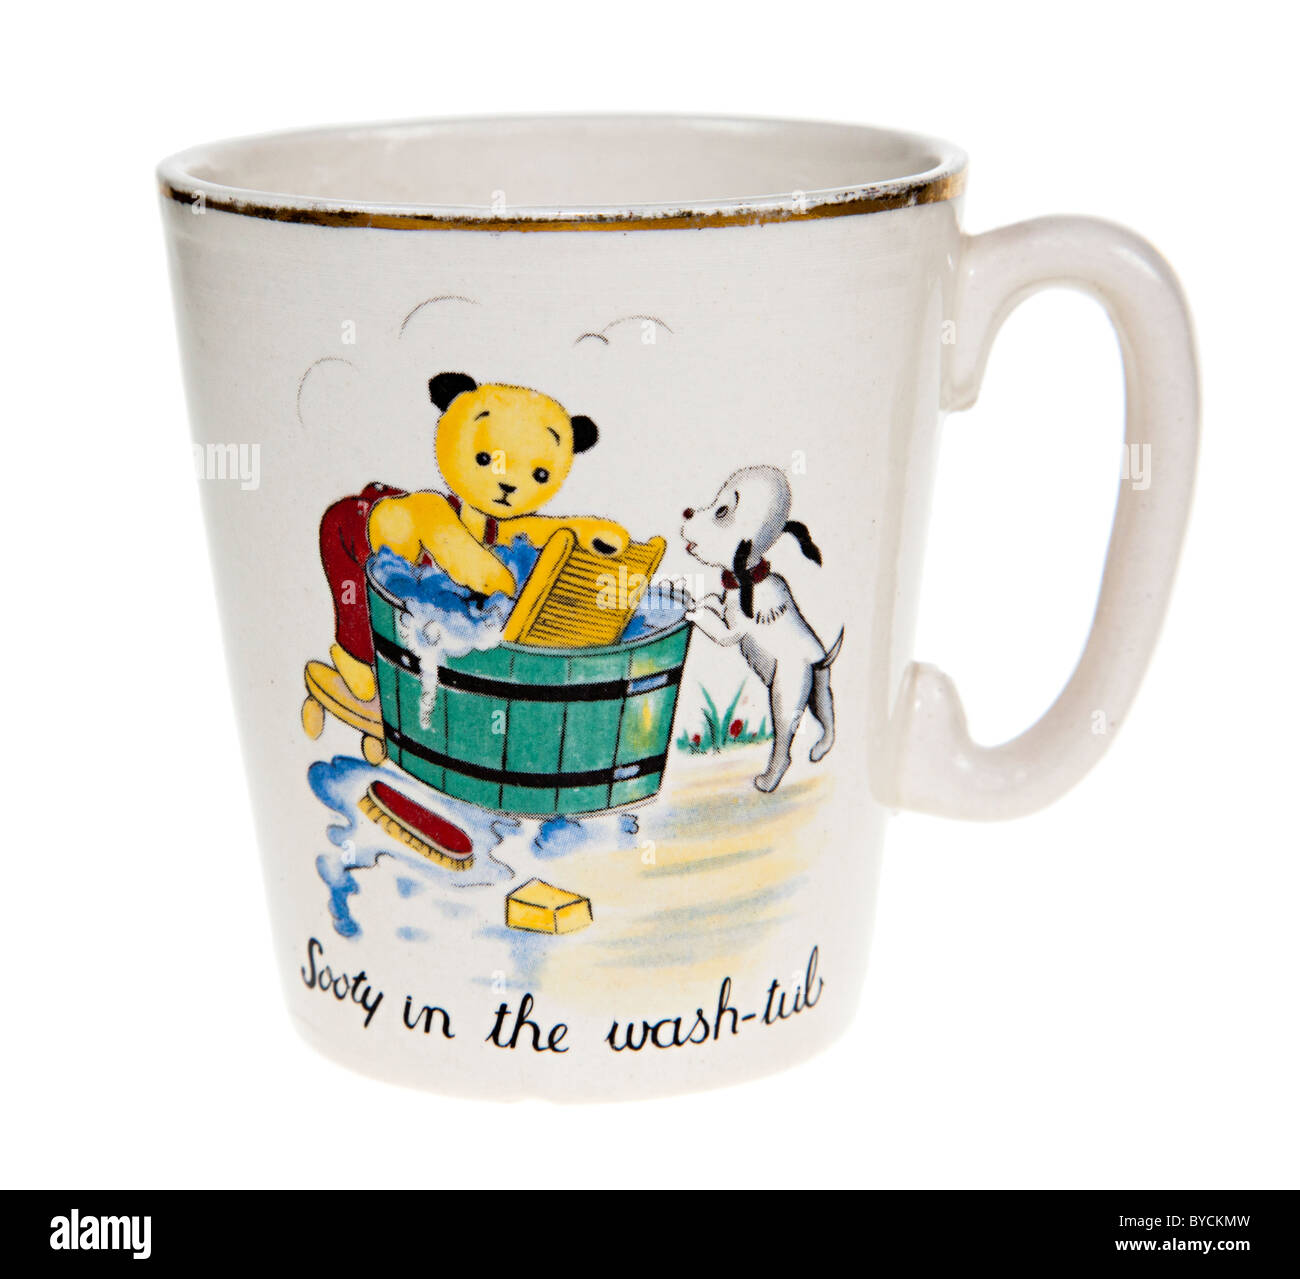 Sooty and sweep children's china teacup antique titled Sooty in the Wash-tub early 1960s UK - Stock Image